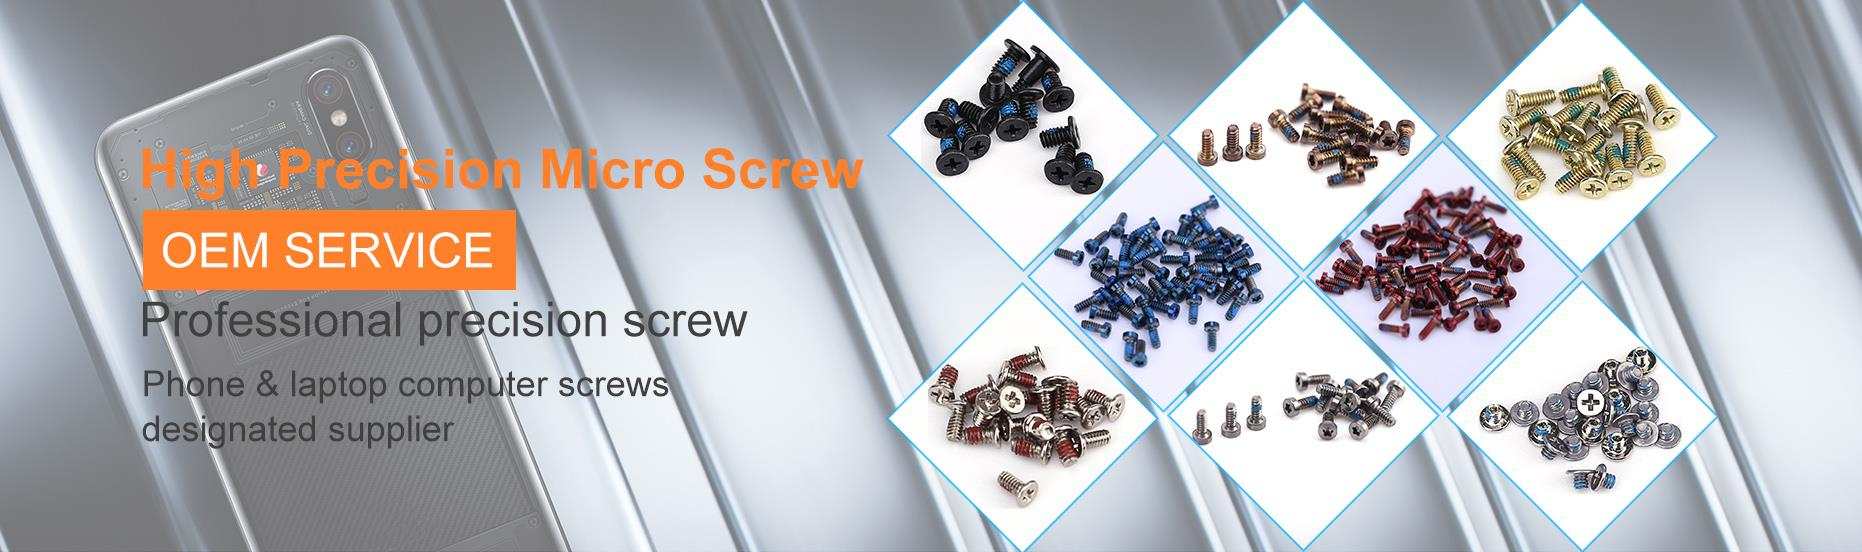 Ophtalmologue 1 Rue Des 4 Cheminées Boulogne Billancourt China Precision Screw Micro Screws Tiny Screws Suppliers Cnc